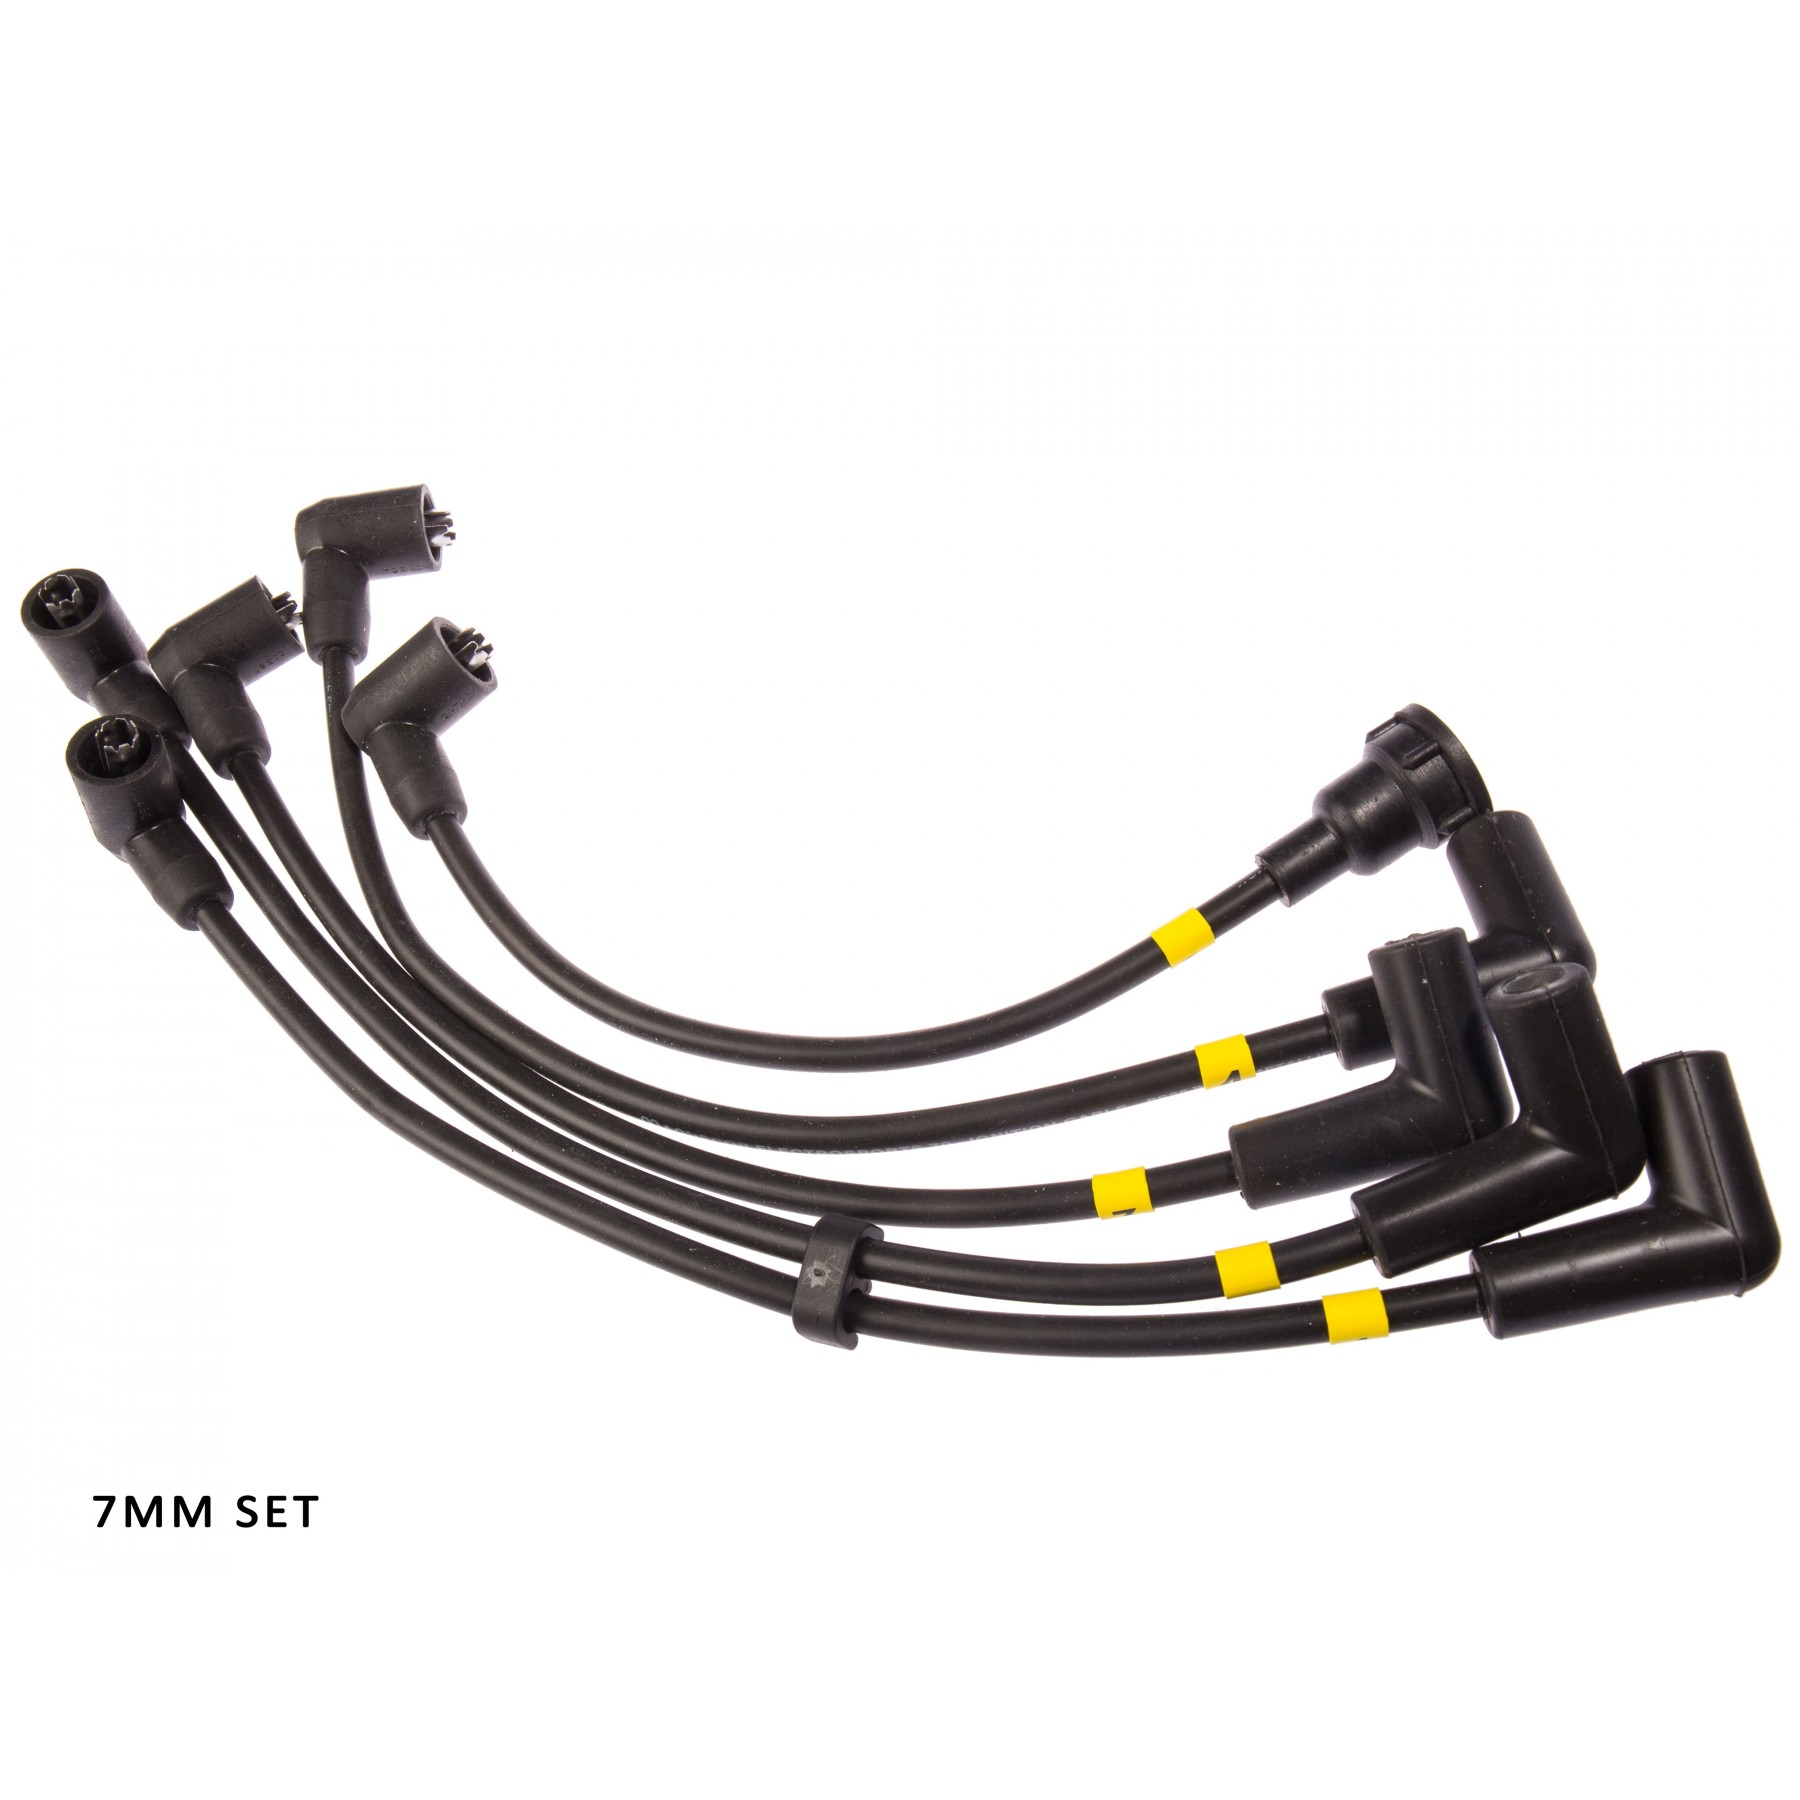 MAGNECOR HIGH PERFORMANCE HT LEADS